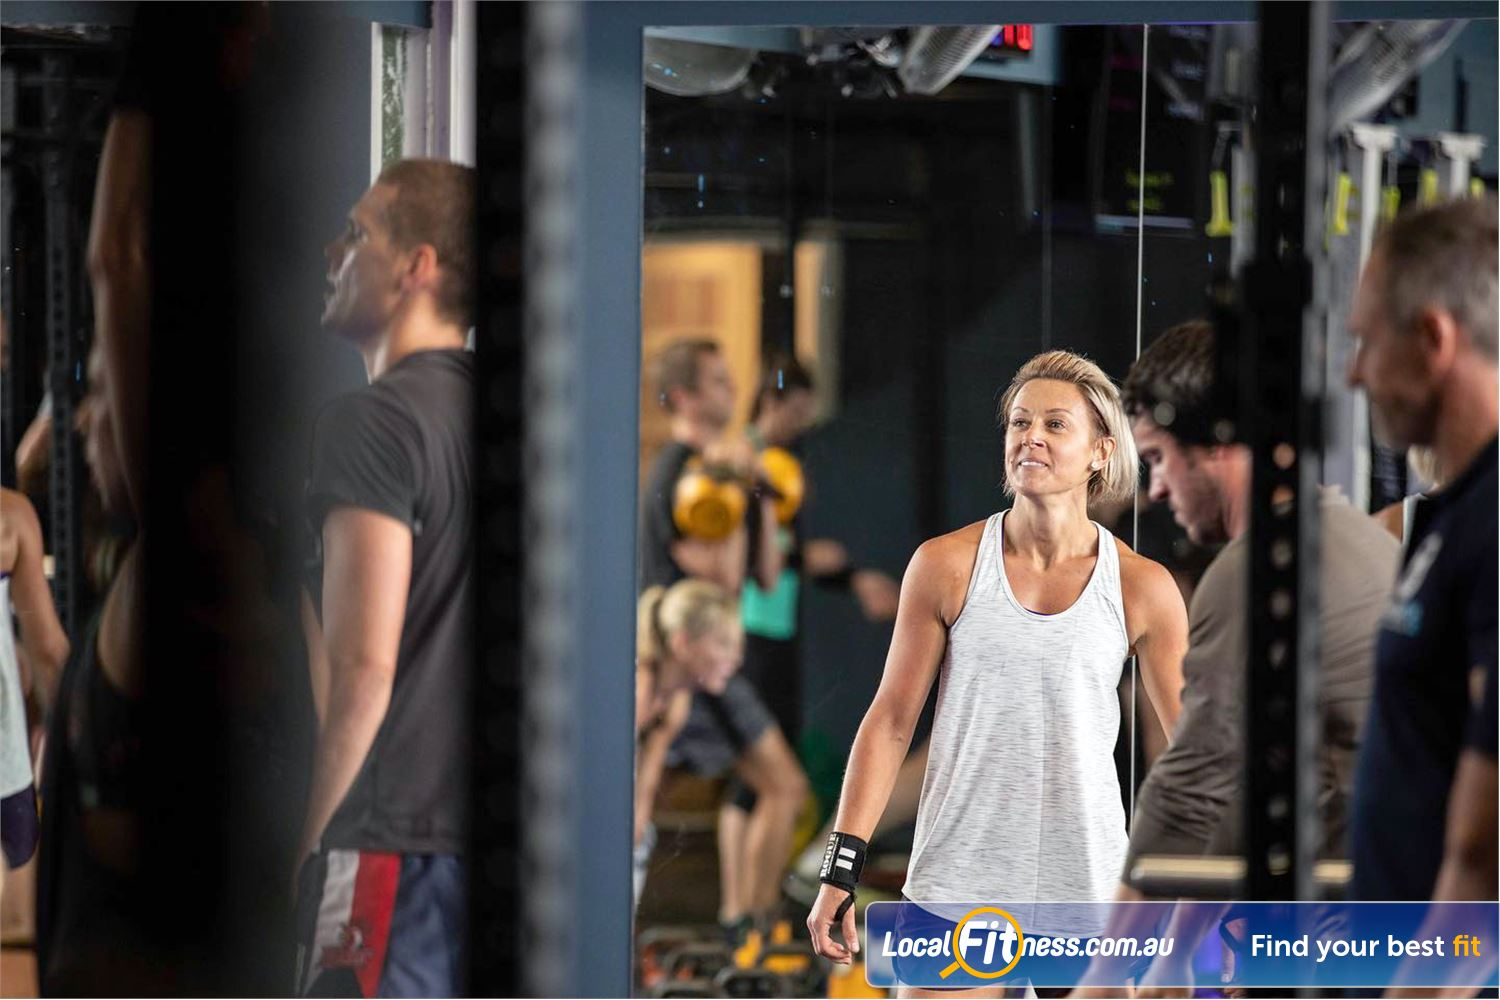 KettleFit Ascot Vale Near Brunswick West At KettleFit we think differently, so we can challenge you in different ways.